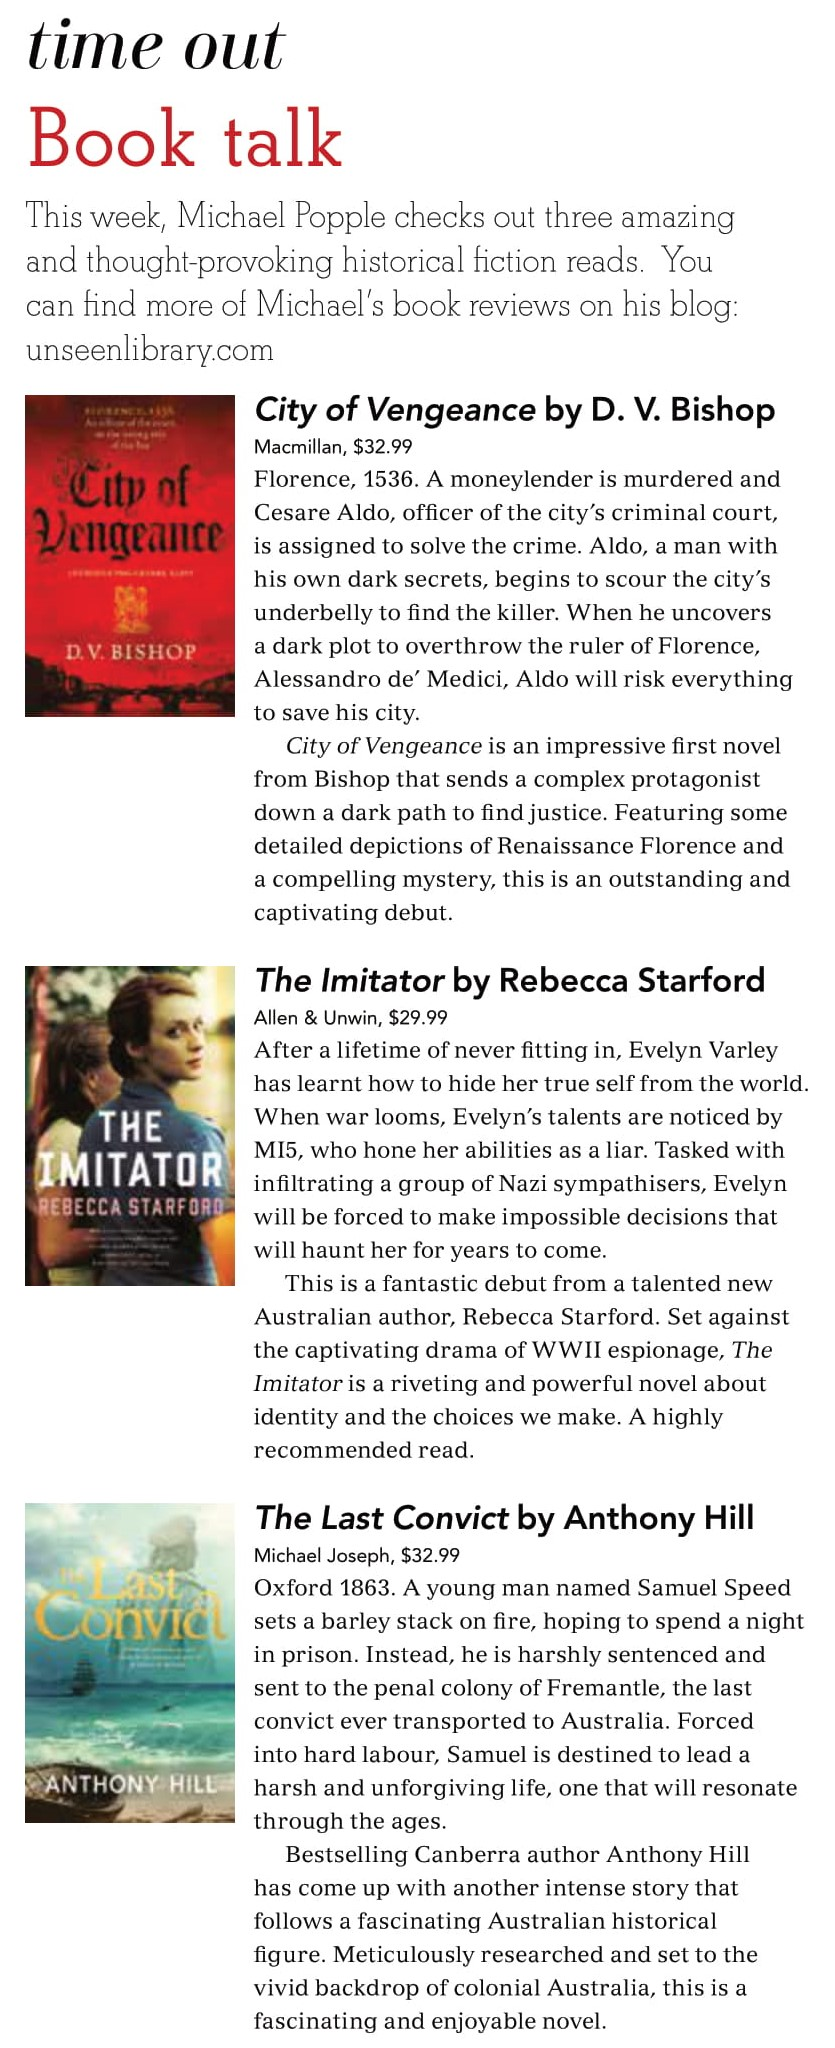 Canberra Weekly Column - Historical Fiction - 18 February 2021 (cropped)